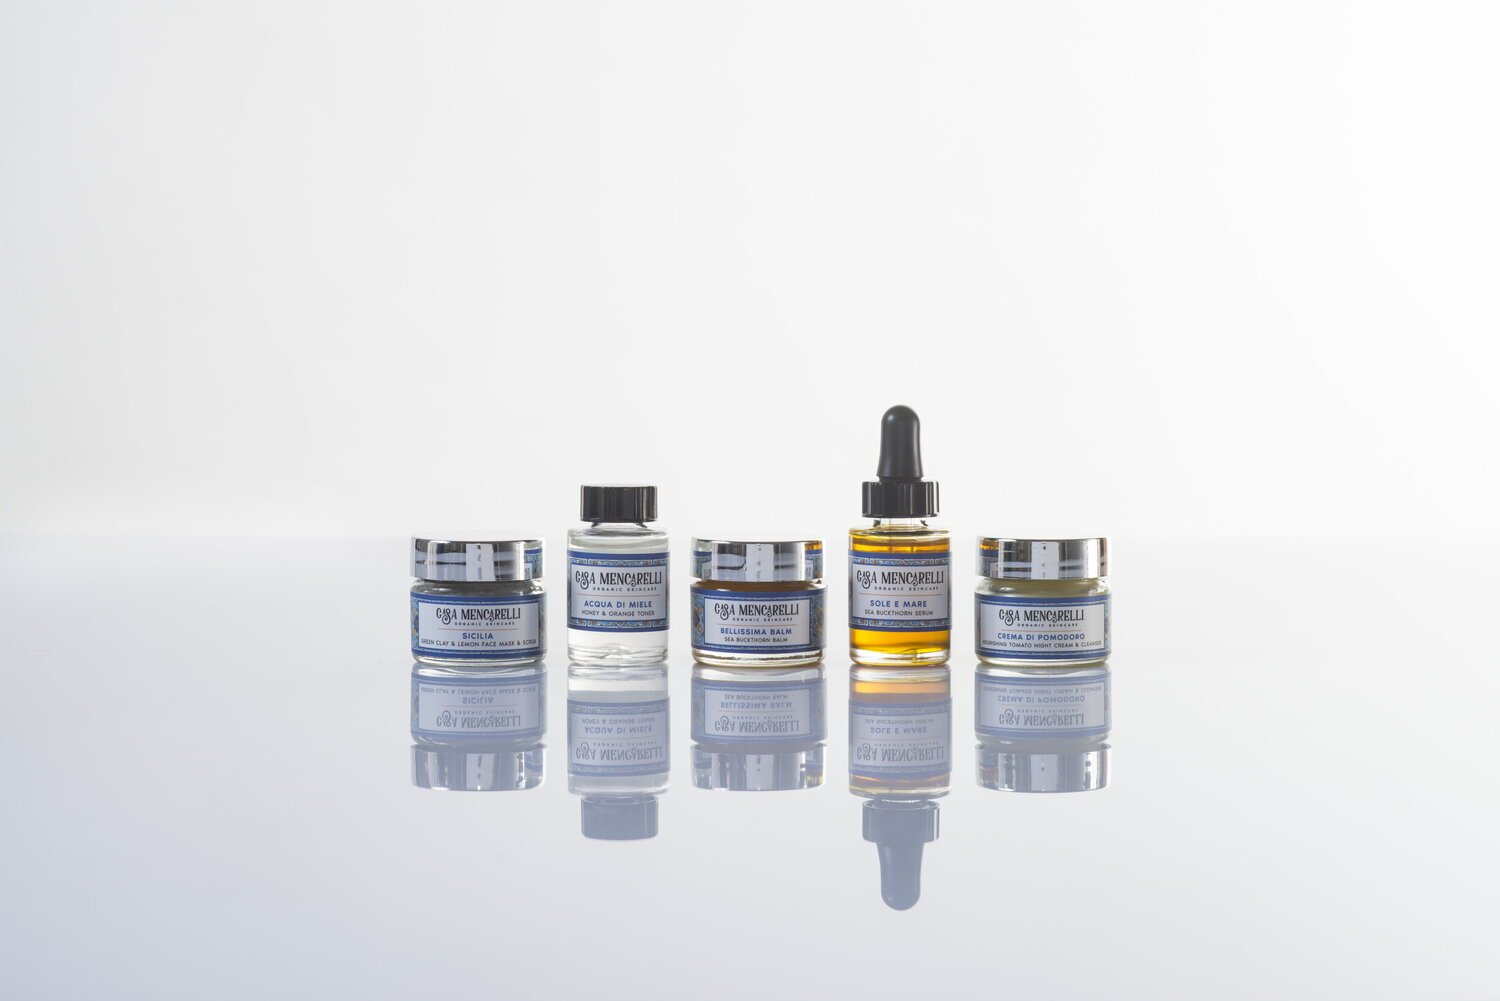 Casa Mencarelli organic skincare products on white surface